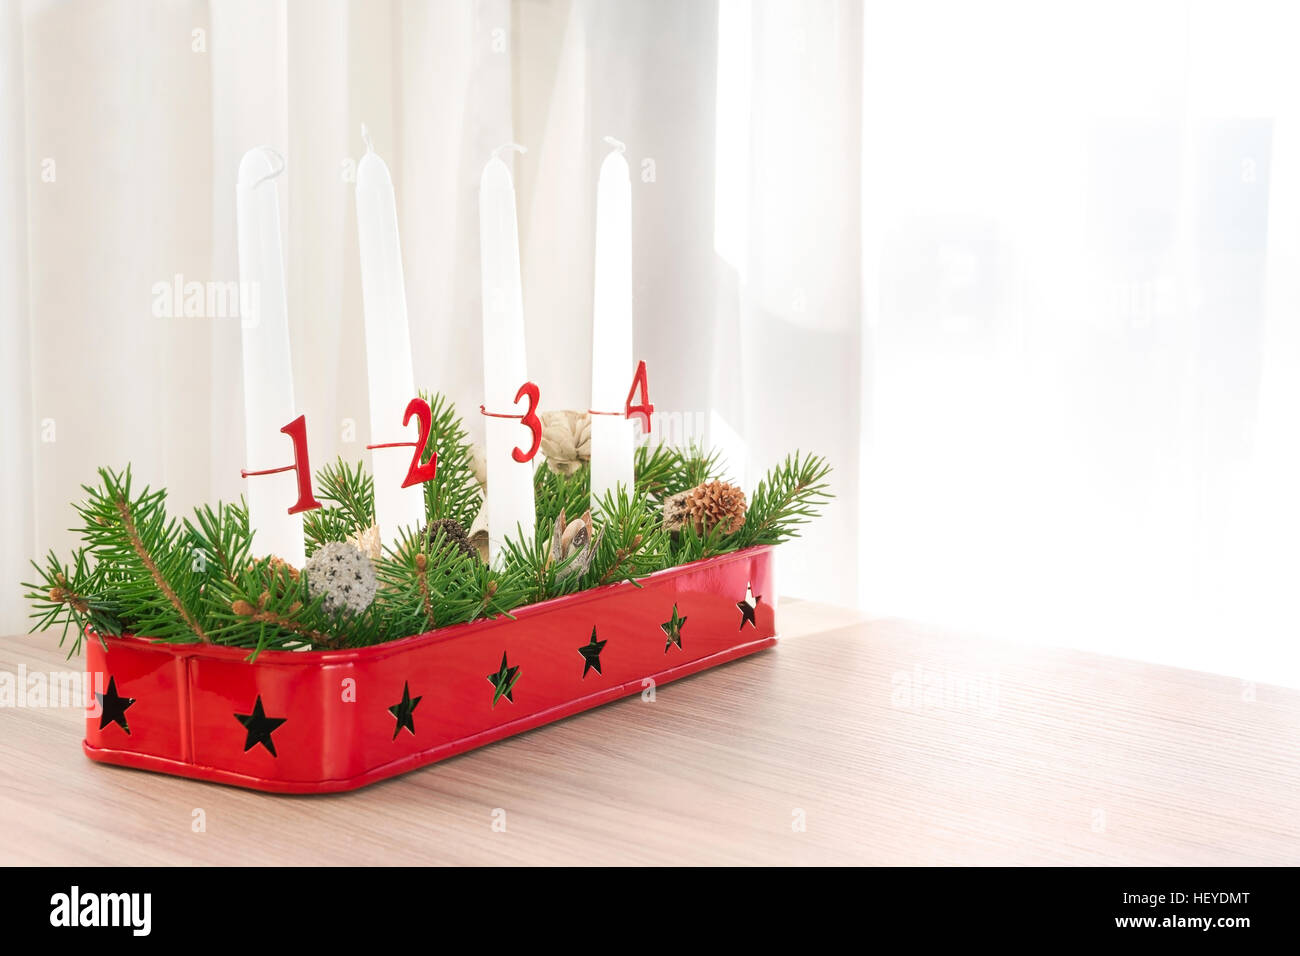 Red Christmas advent wreath with decoration on table against light background - Stock Image